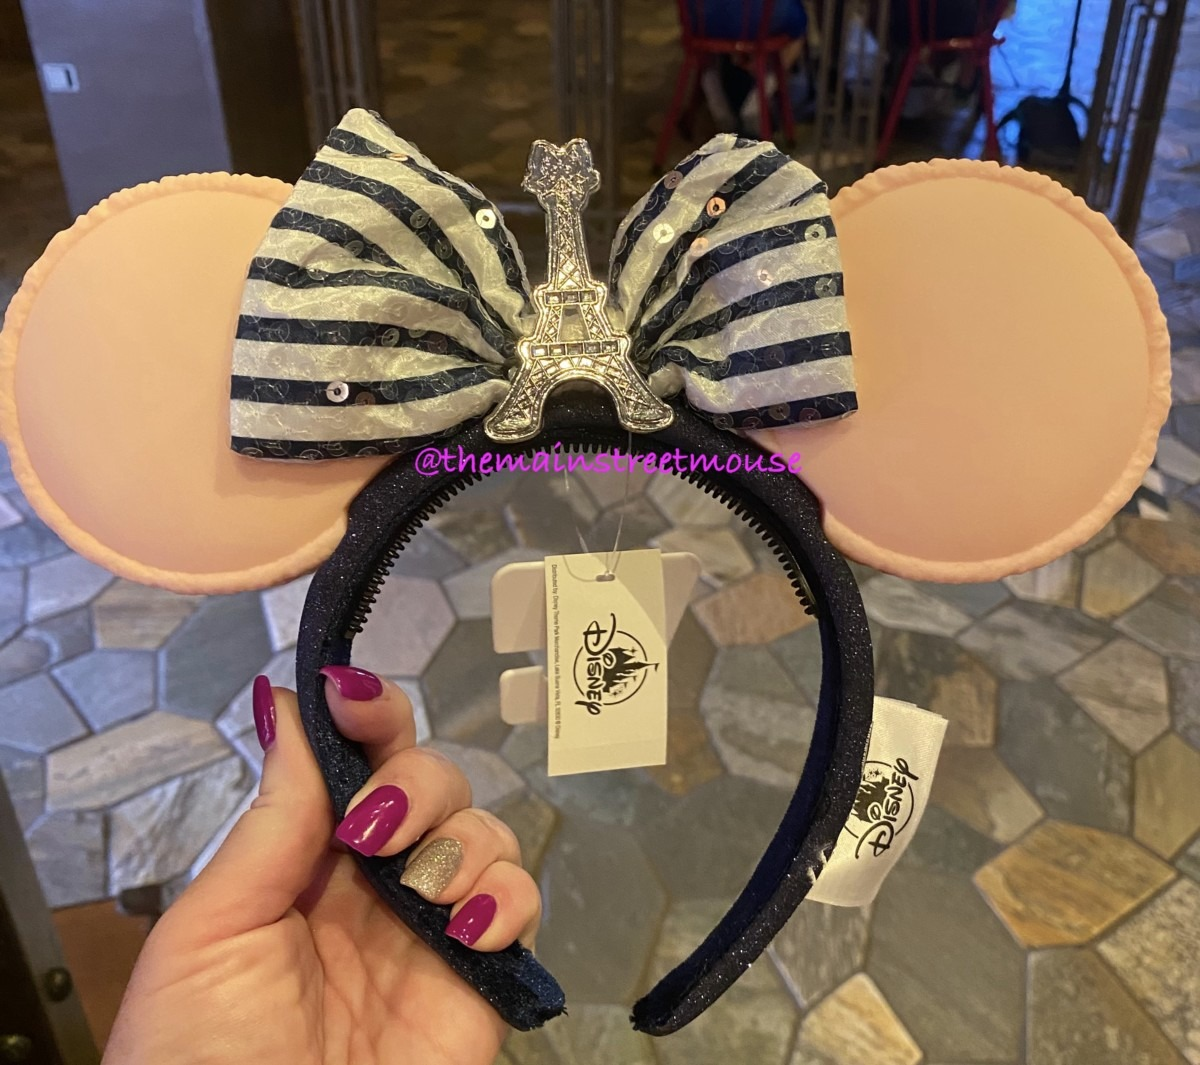 More NEW Minnie Ear Headbands at Walt Disney World! #disneystyle 2